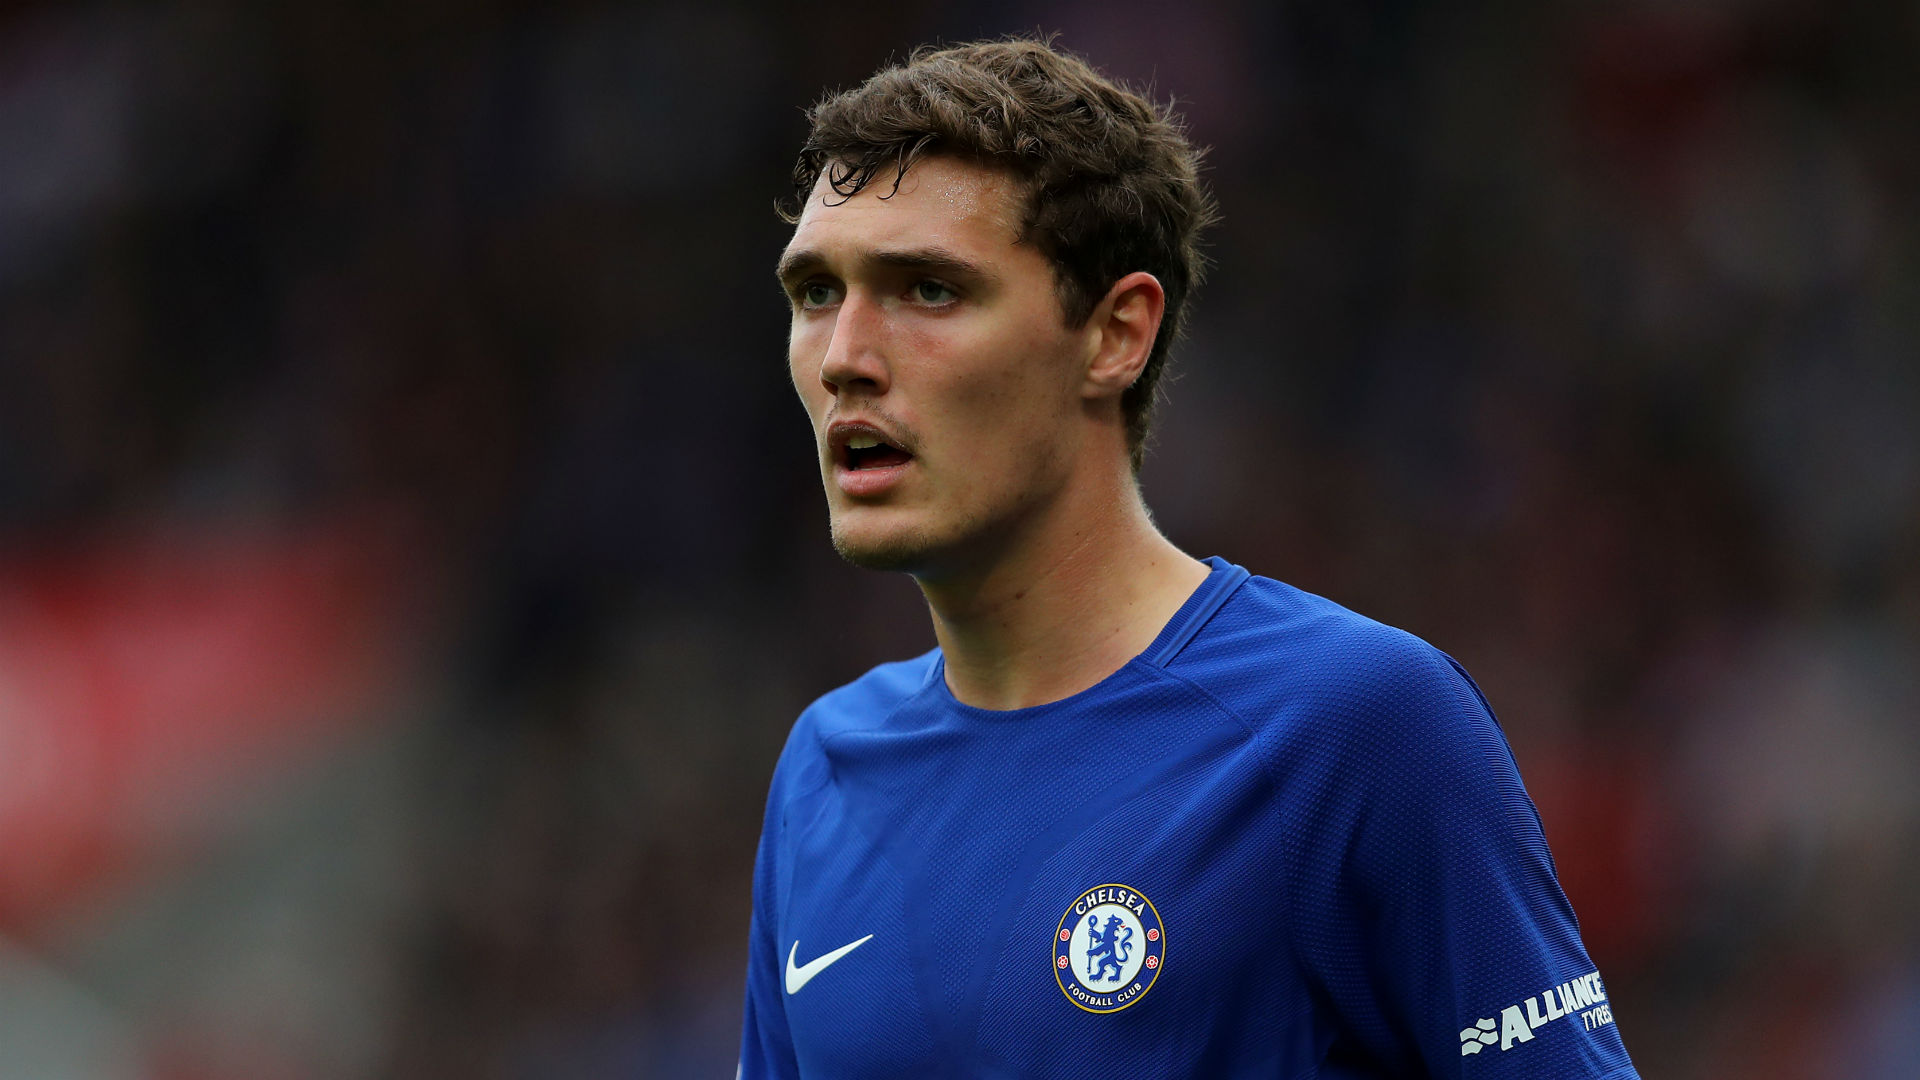 The next John Terry? Christensen advised by Gallas on how to follow in iconic footsteps